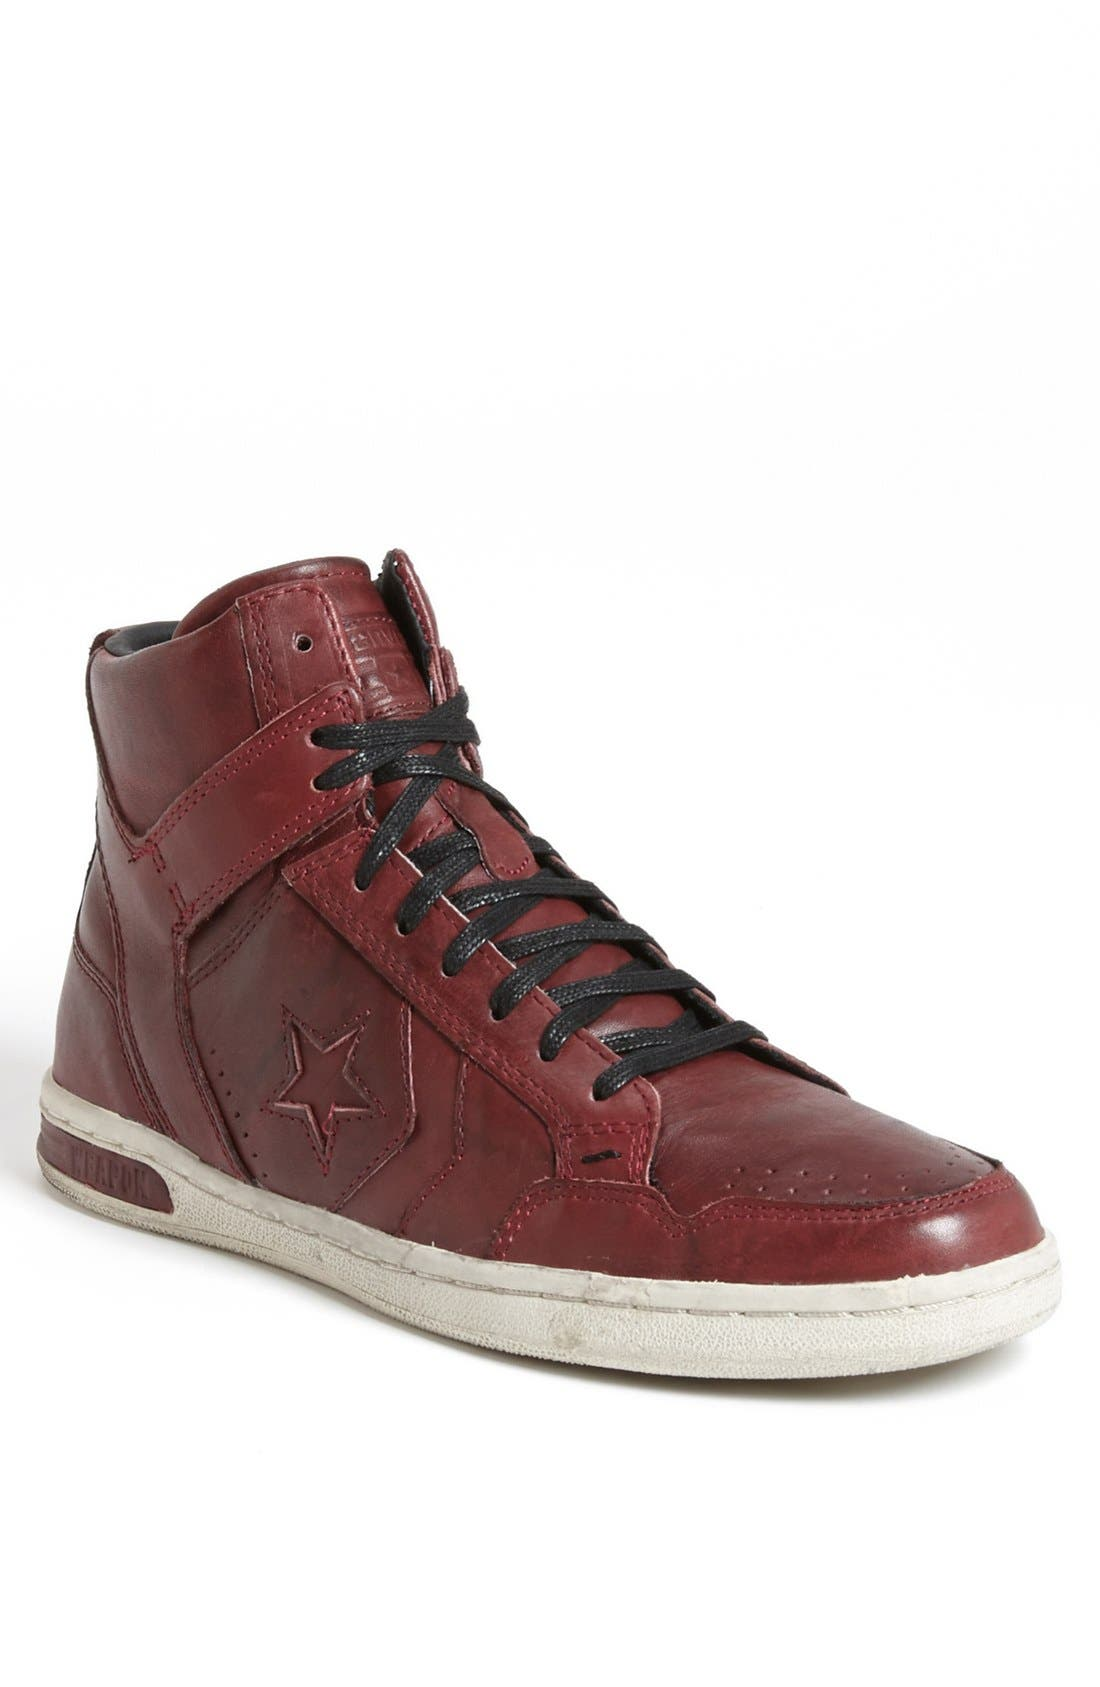 Alternate Image 1 Selected - Converse by John Varvatos 'Weapon' Sneaker (Online Only)